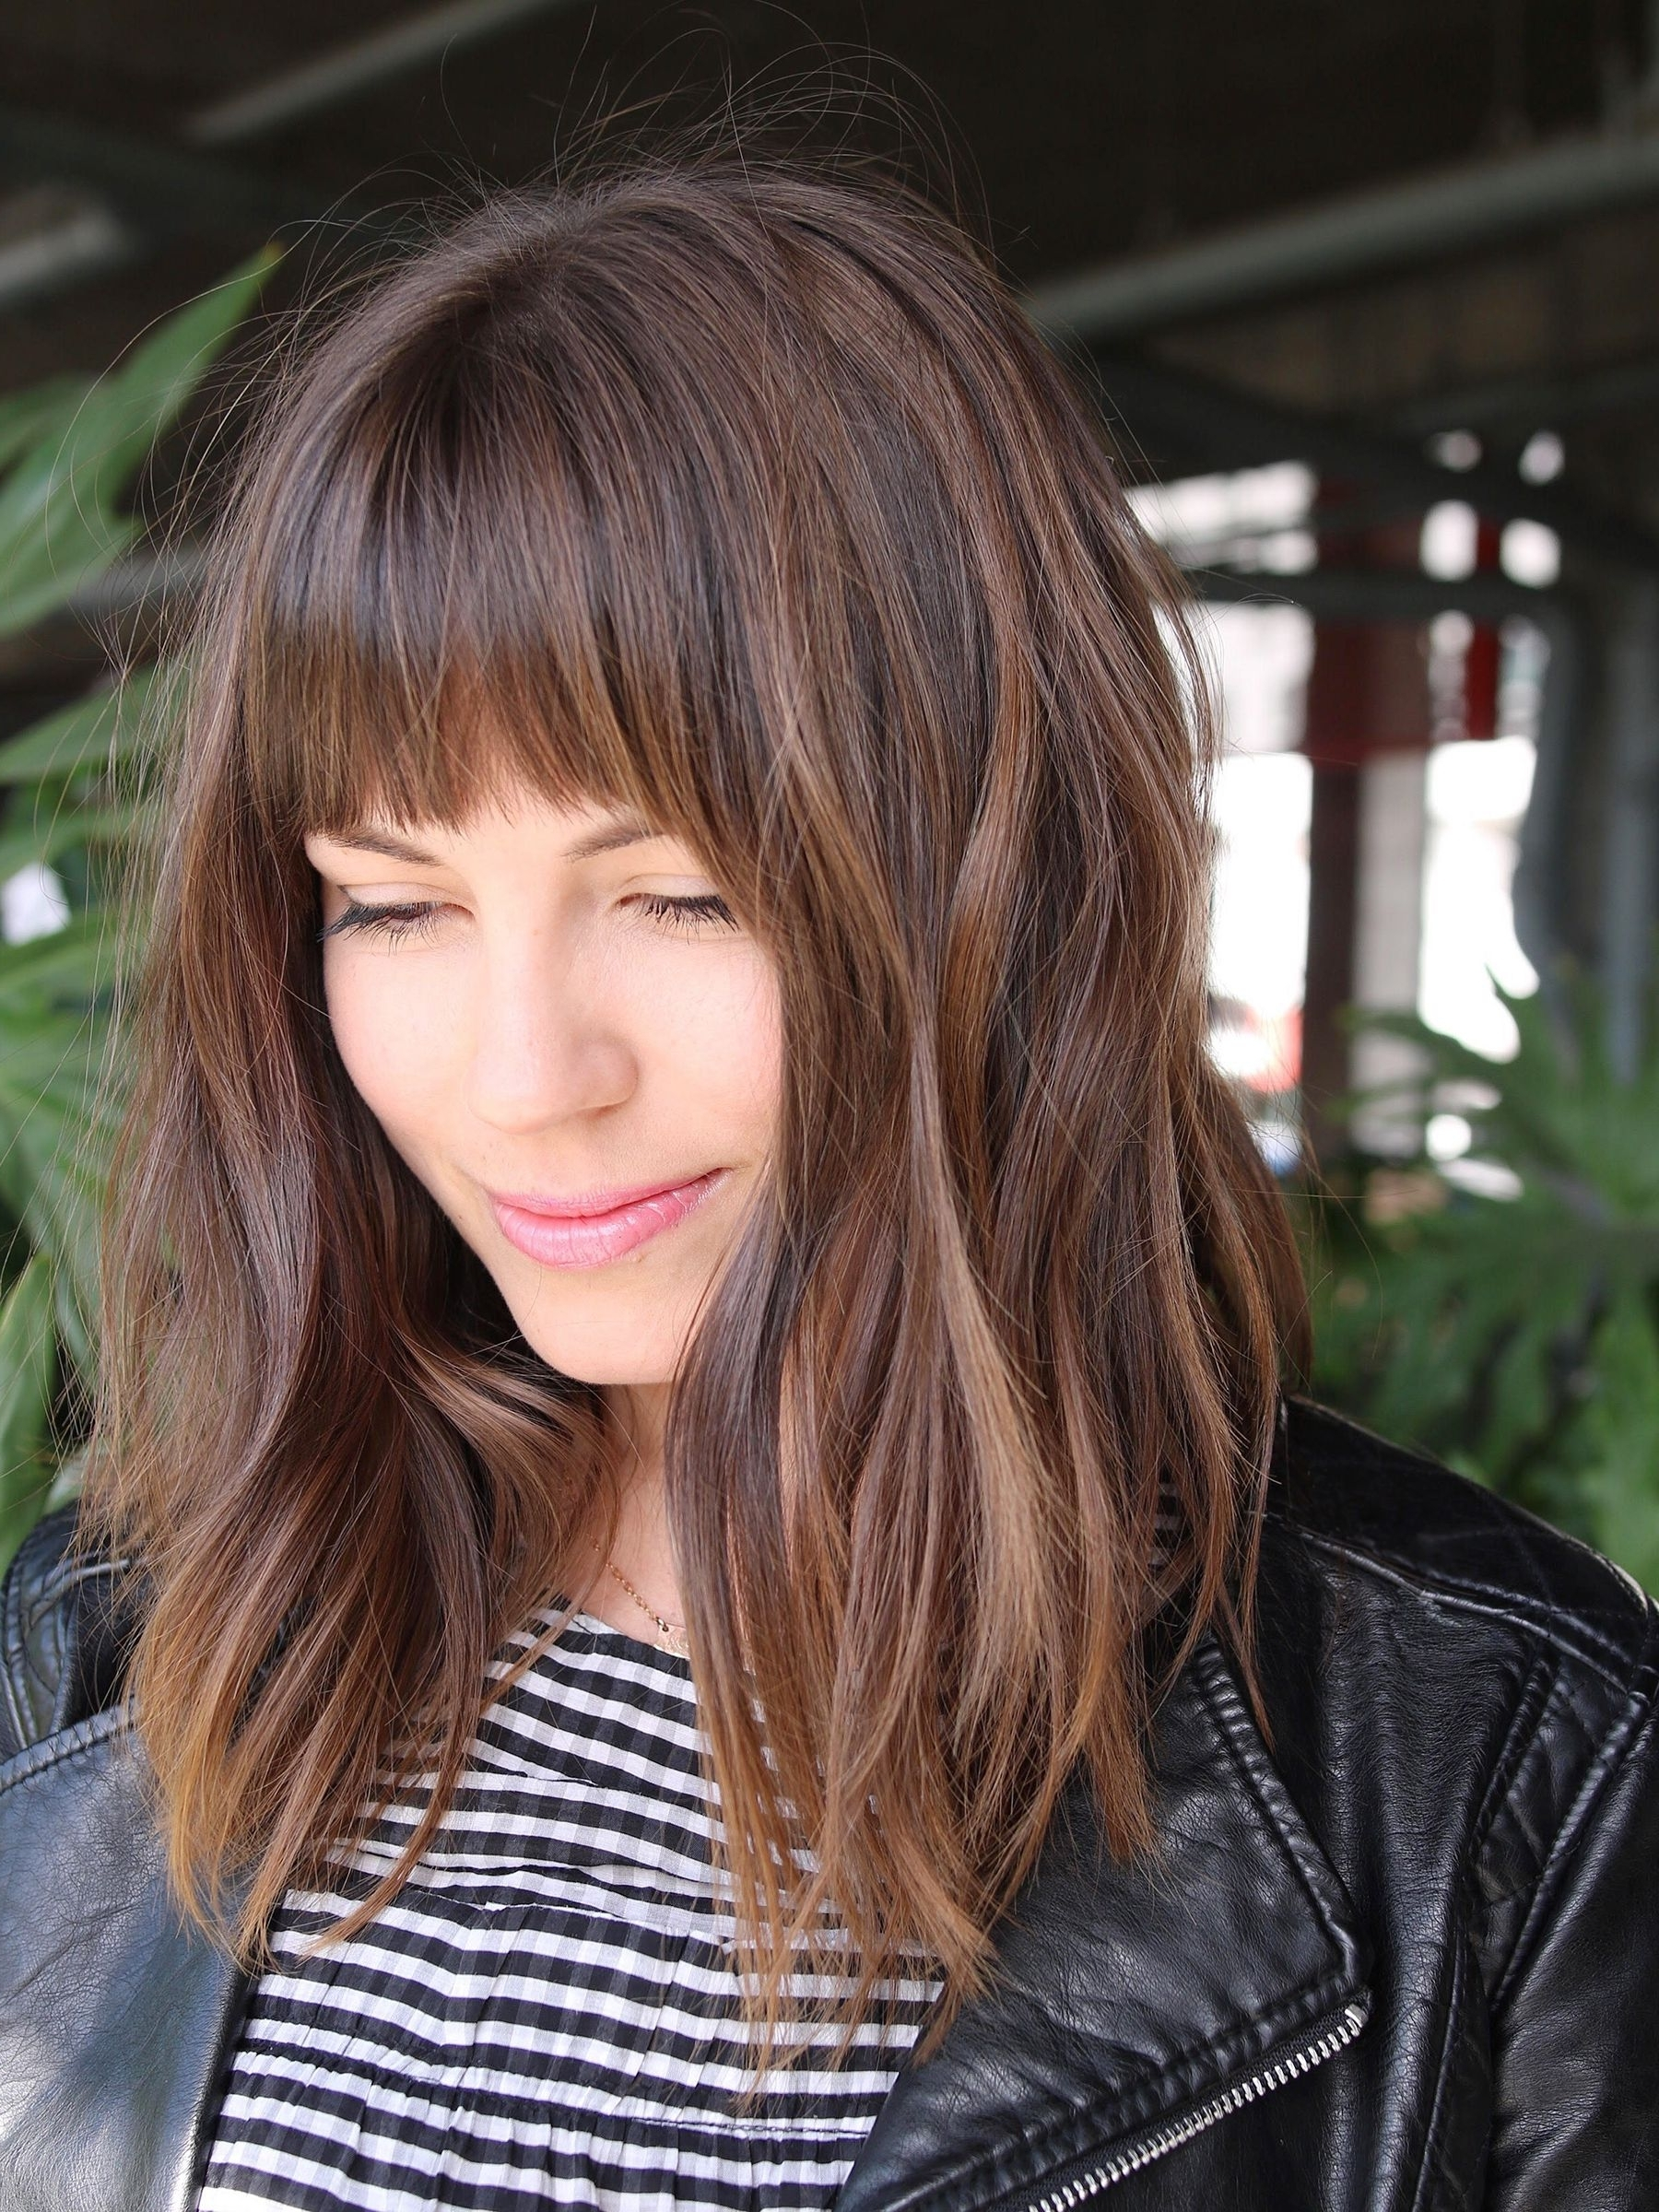 Hair Ideas Trends 2018 – Accessories Shag Blunt Bangs With Best And Newest Shaggy Bangs Long Hair (View 6 of 15)